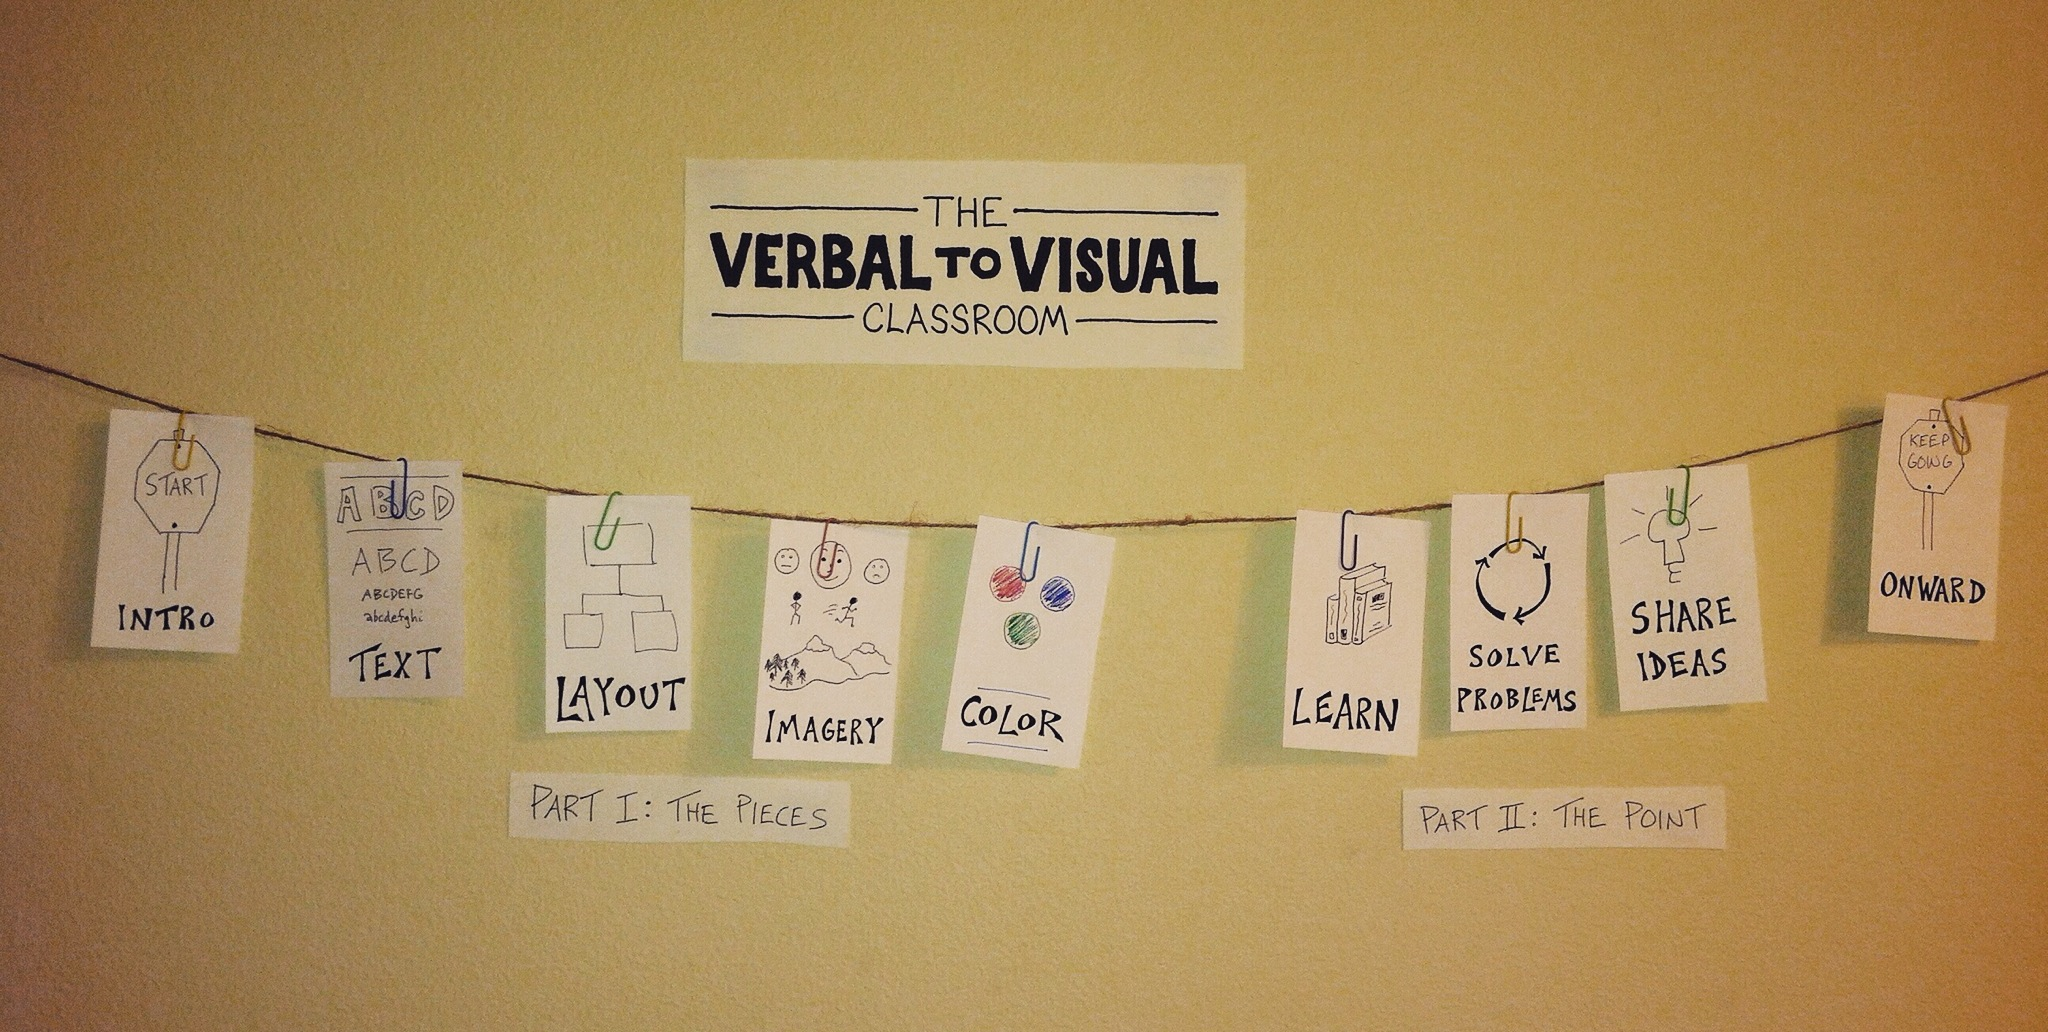 The Verbal To Visual Classroom Clothesline - Doug Neill - planning, organizing, wall space, outline, timeline, sketchnotes, visual note-taking, doodling